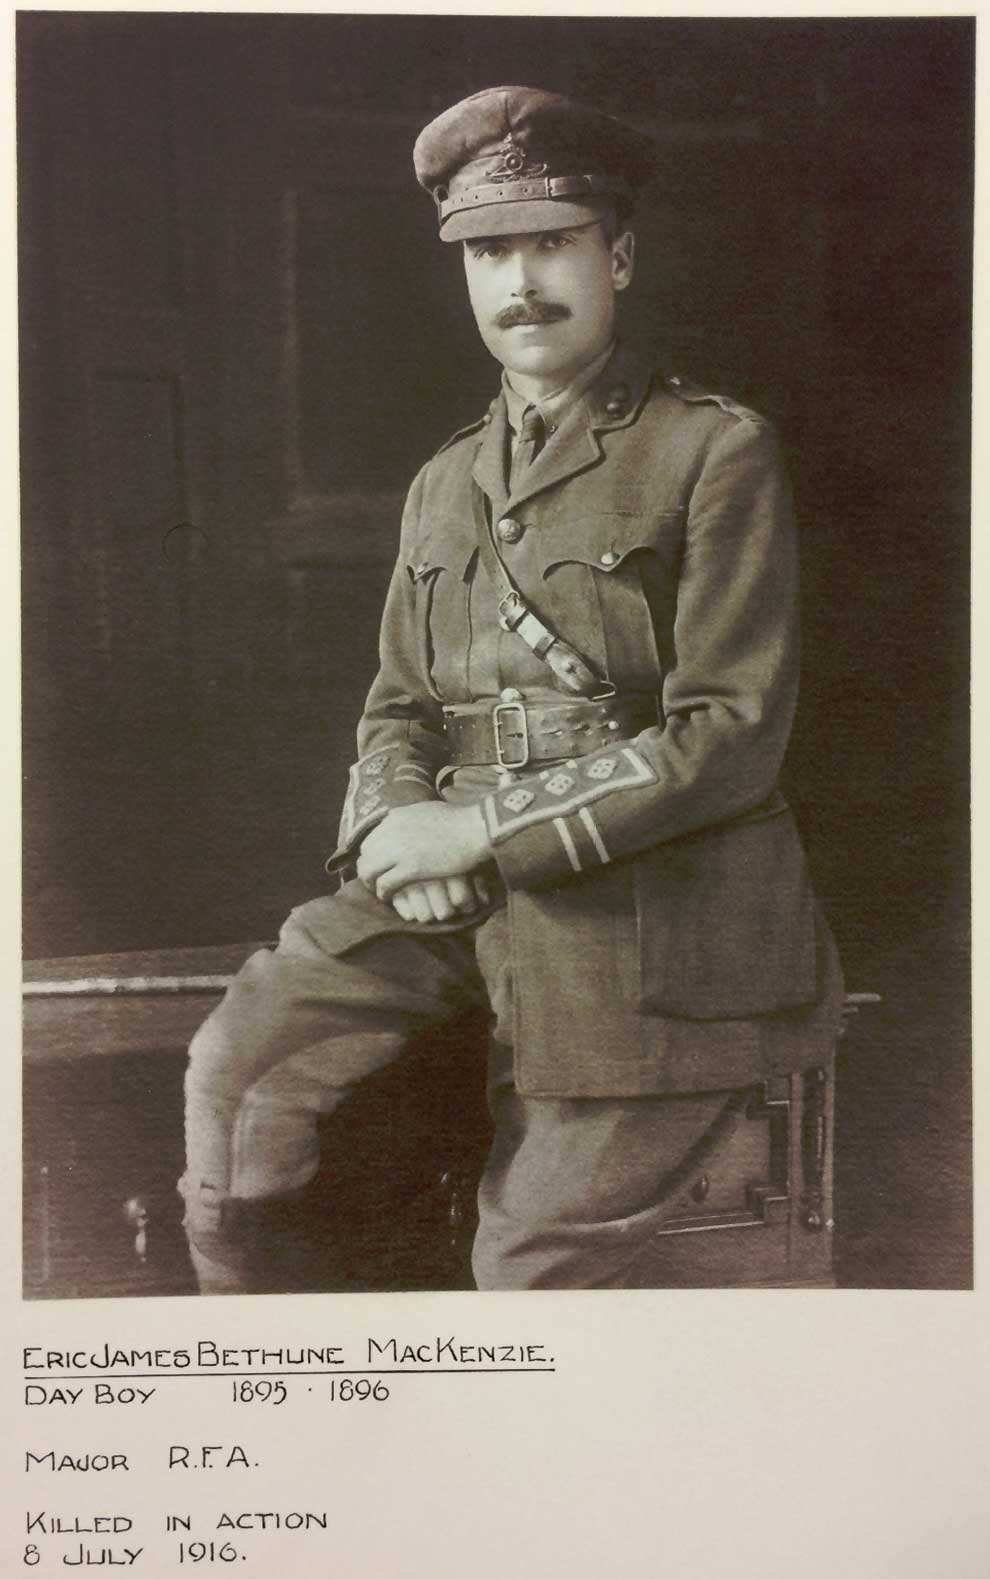 captain eric james bethune mackenzie royal field artillery kia france 8 7 1916. Black Bedroom Furniture Sets. Home Design Ideas